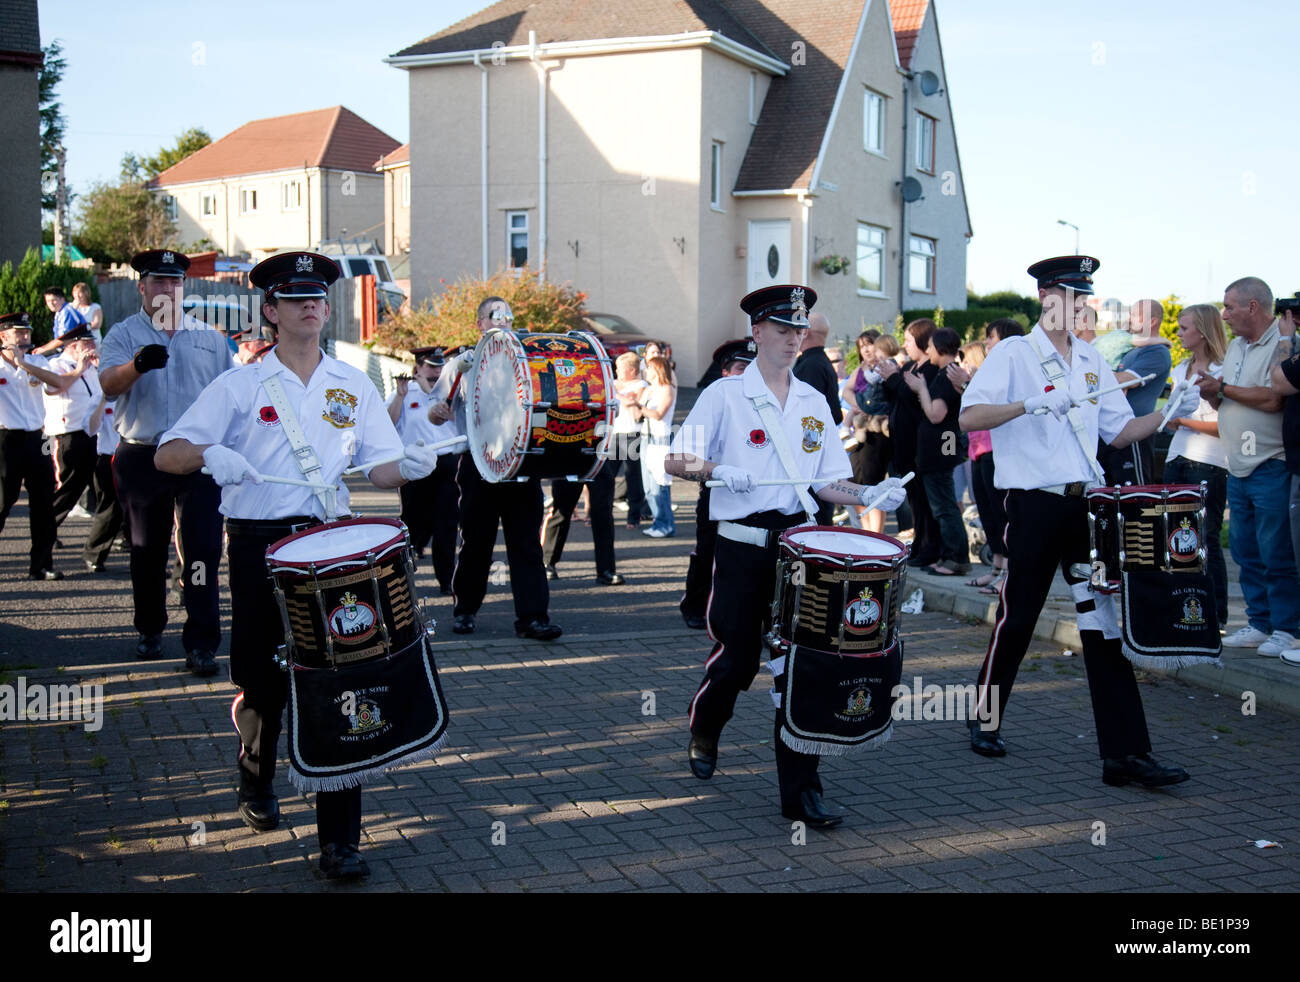 Loyalist Marching Band in Kilwinning, Ayrshire, Scotland - Stock Image